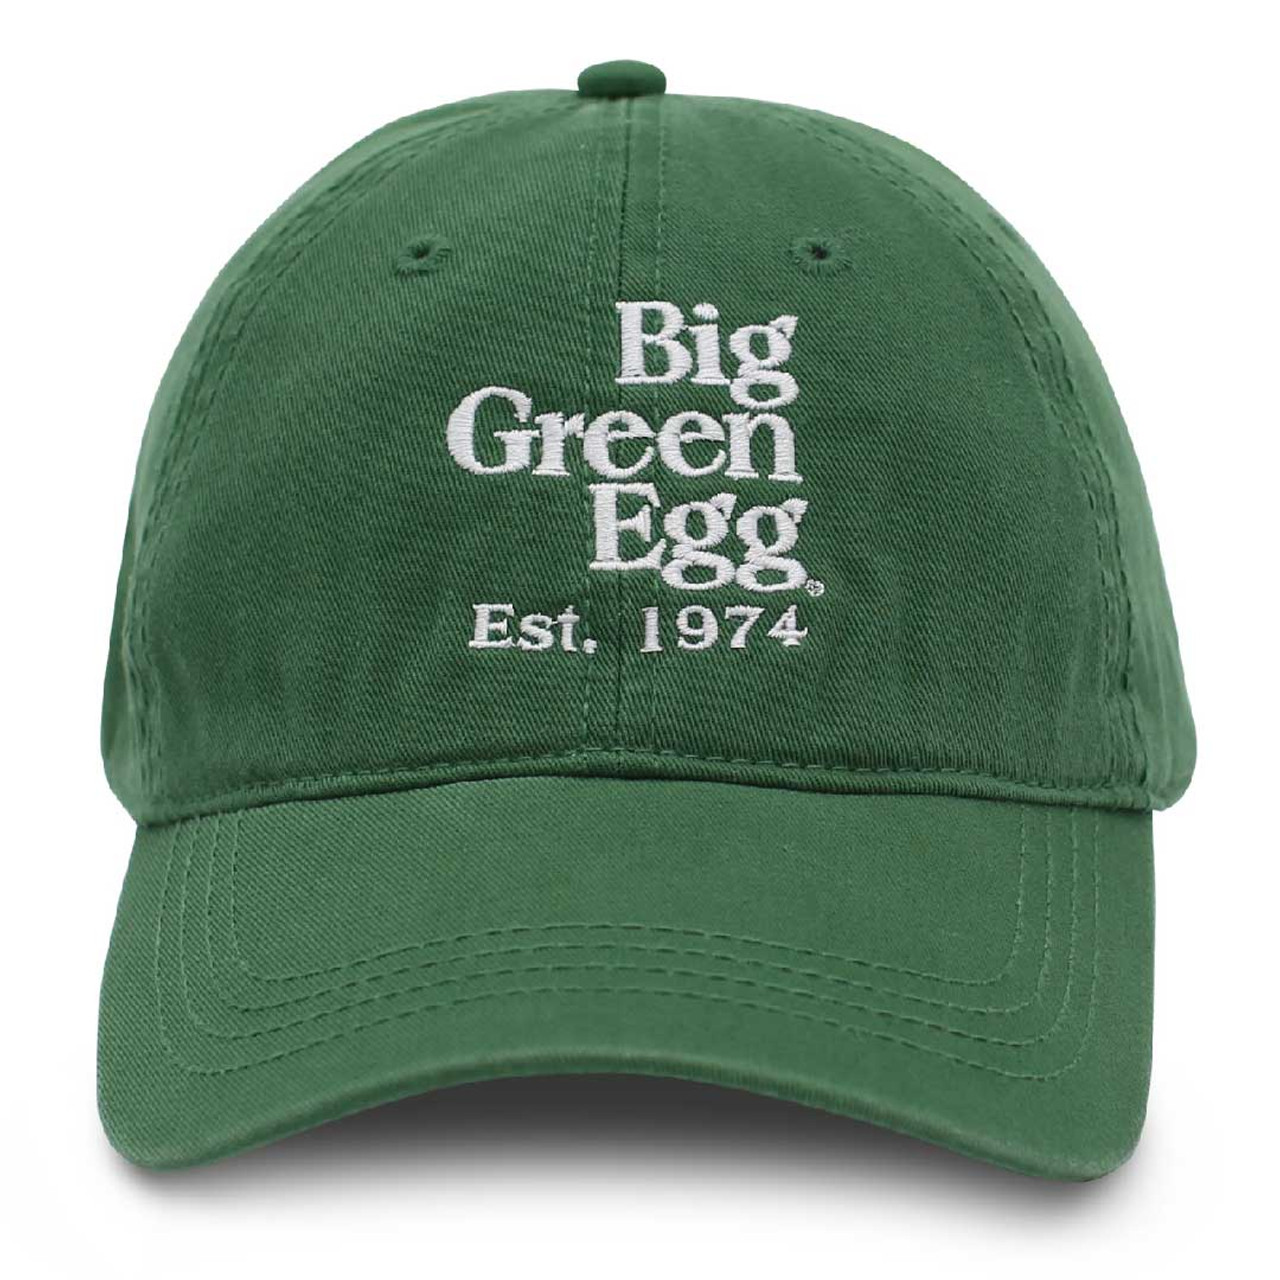 Big Green Egg Relaxed Est. 1974 Cap – Green